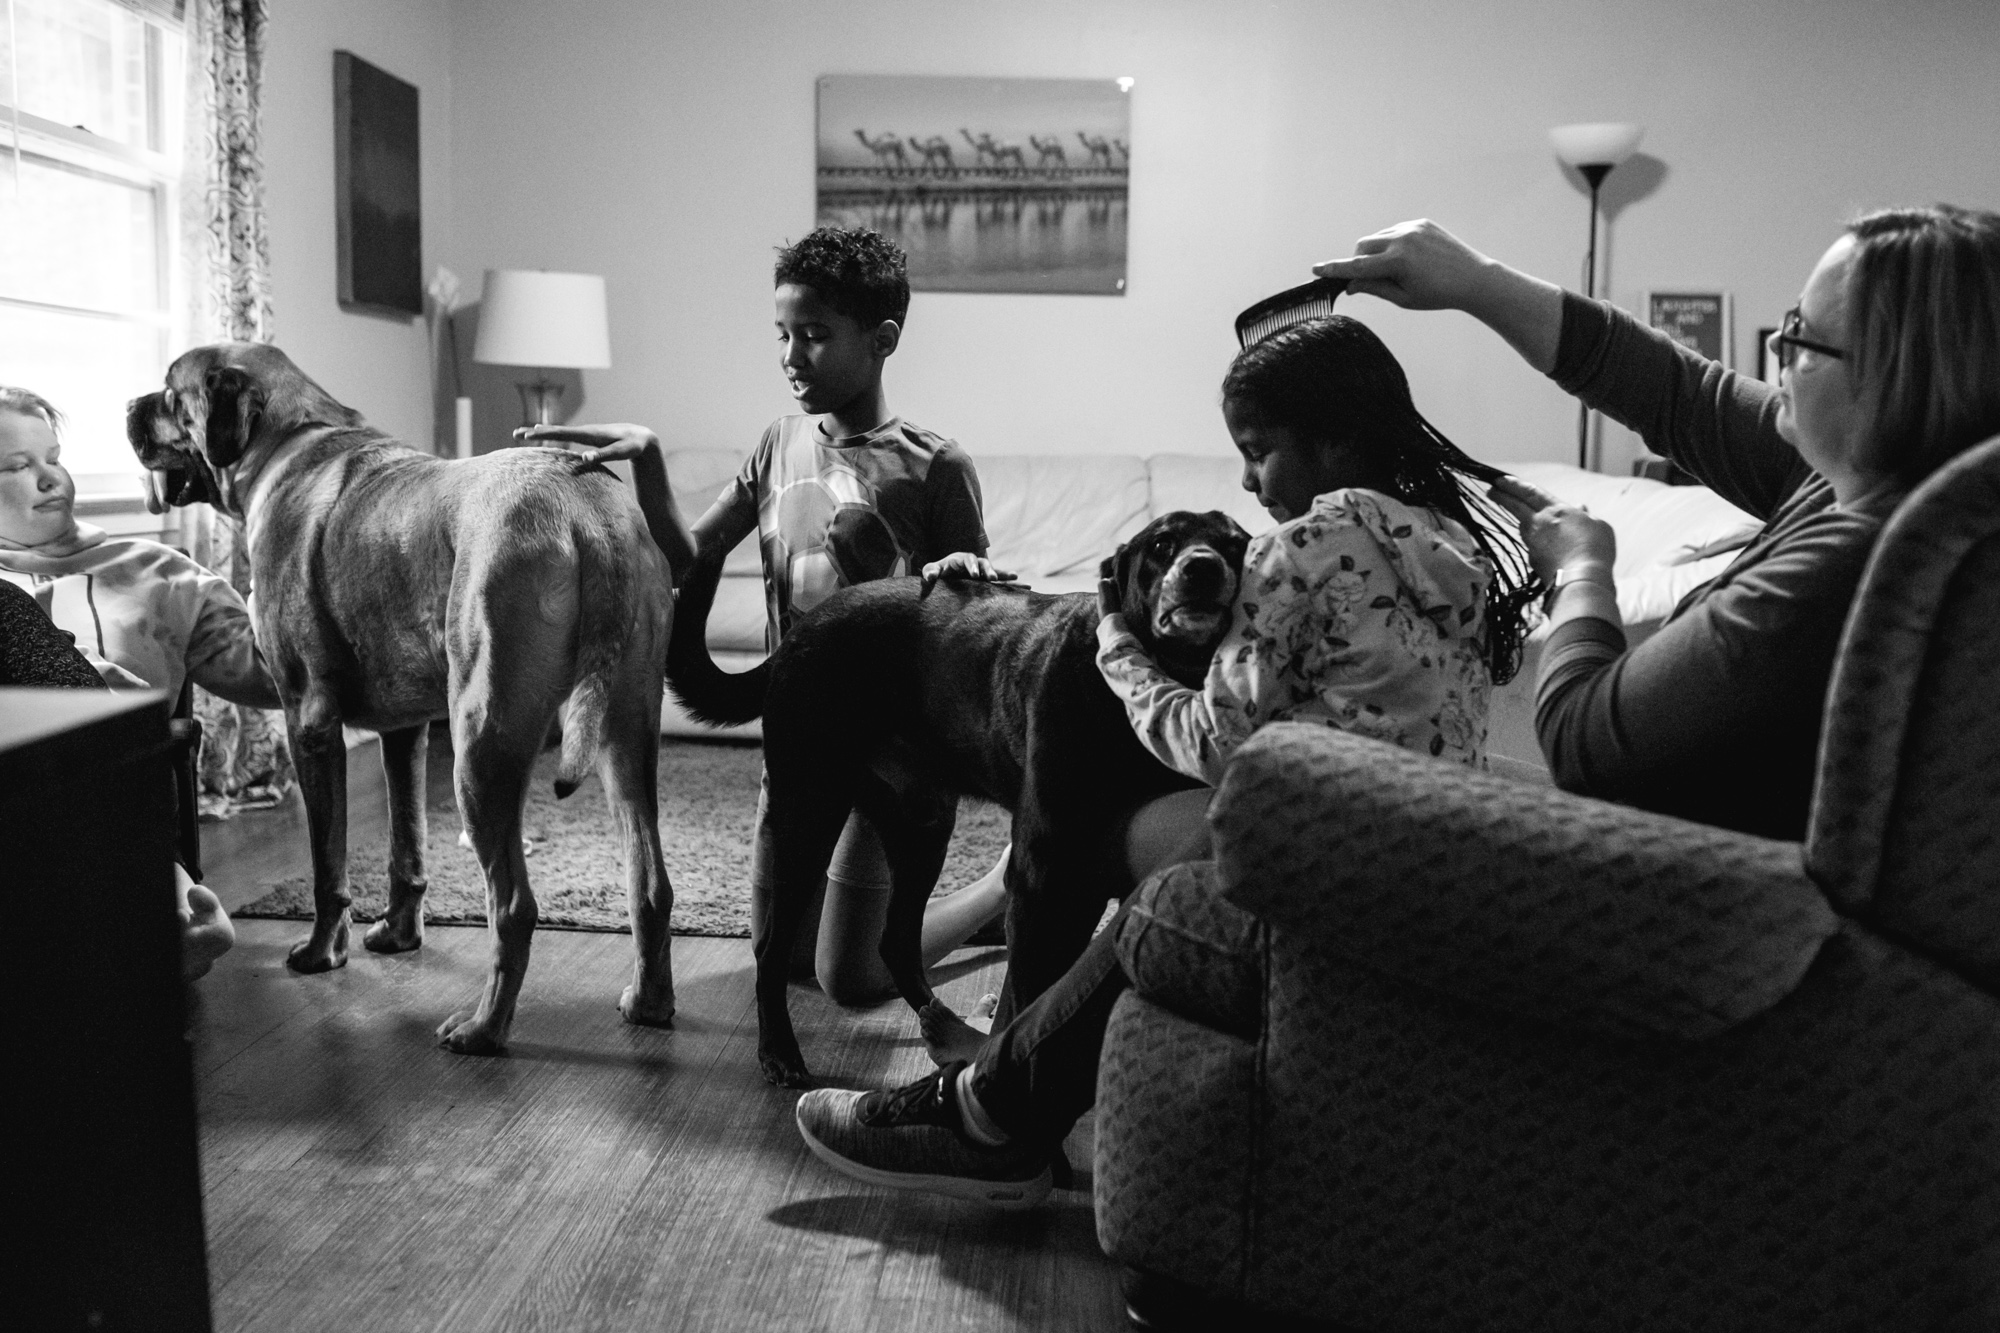 A mom brushes her daughter's hair as she cuddles a dog who is being pet by her brother who is petting another dog who is also being pet by a different sister